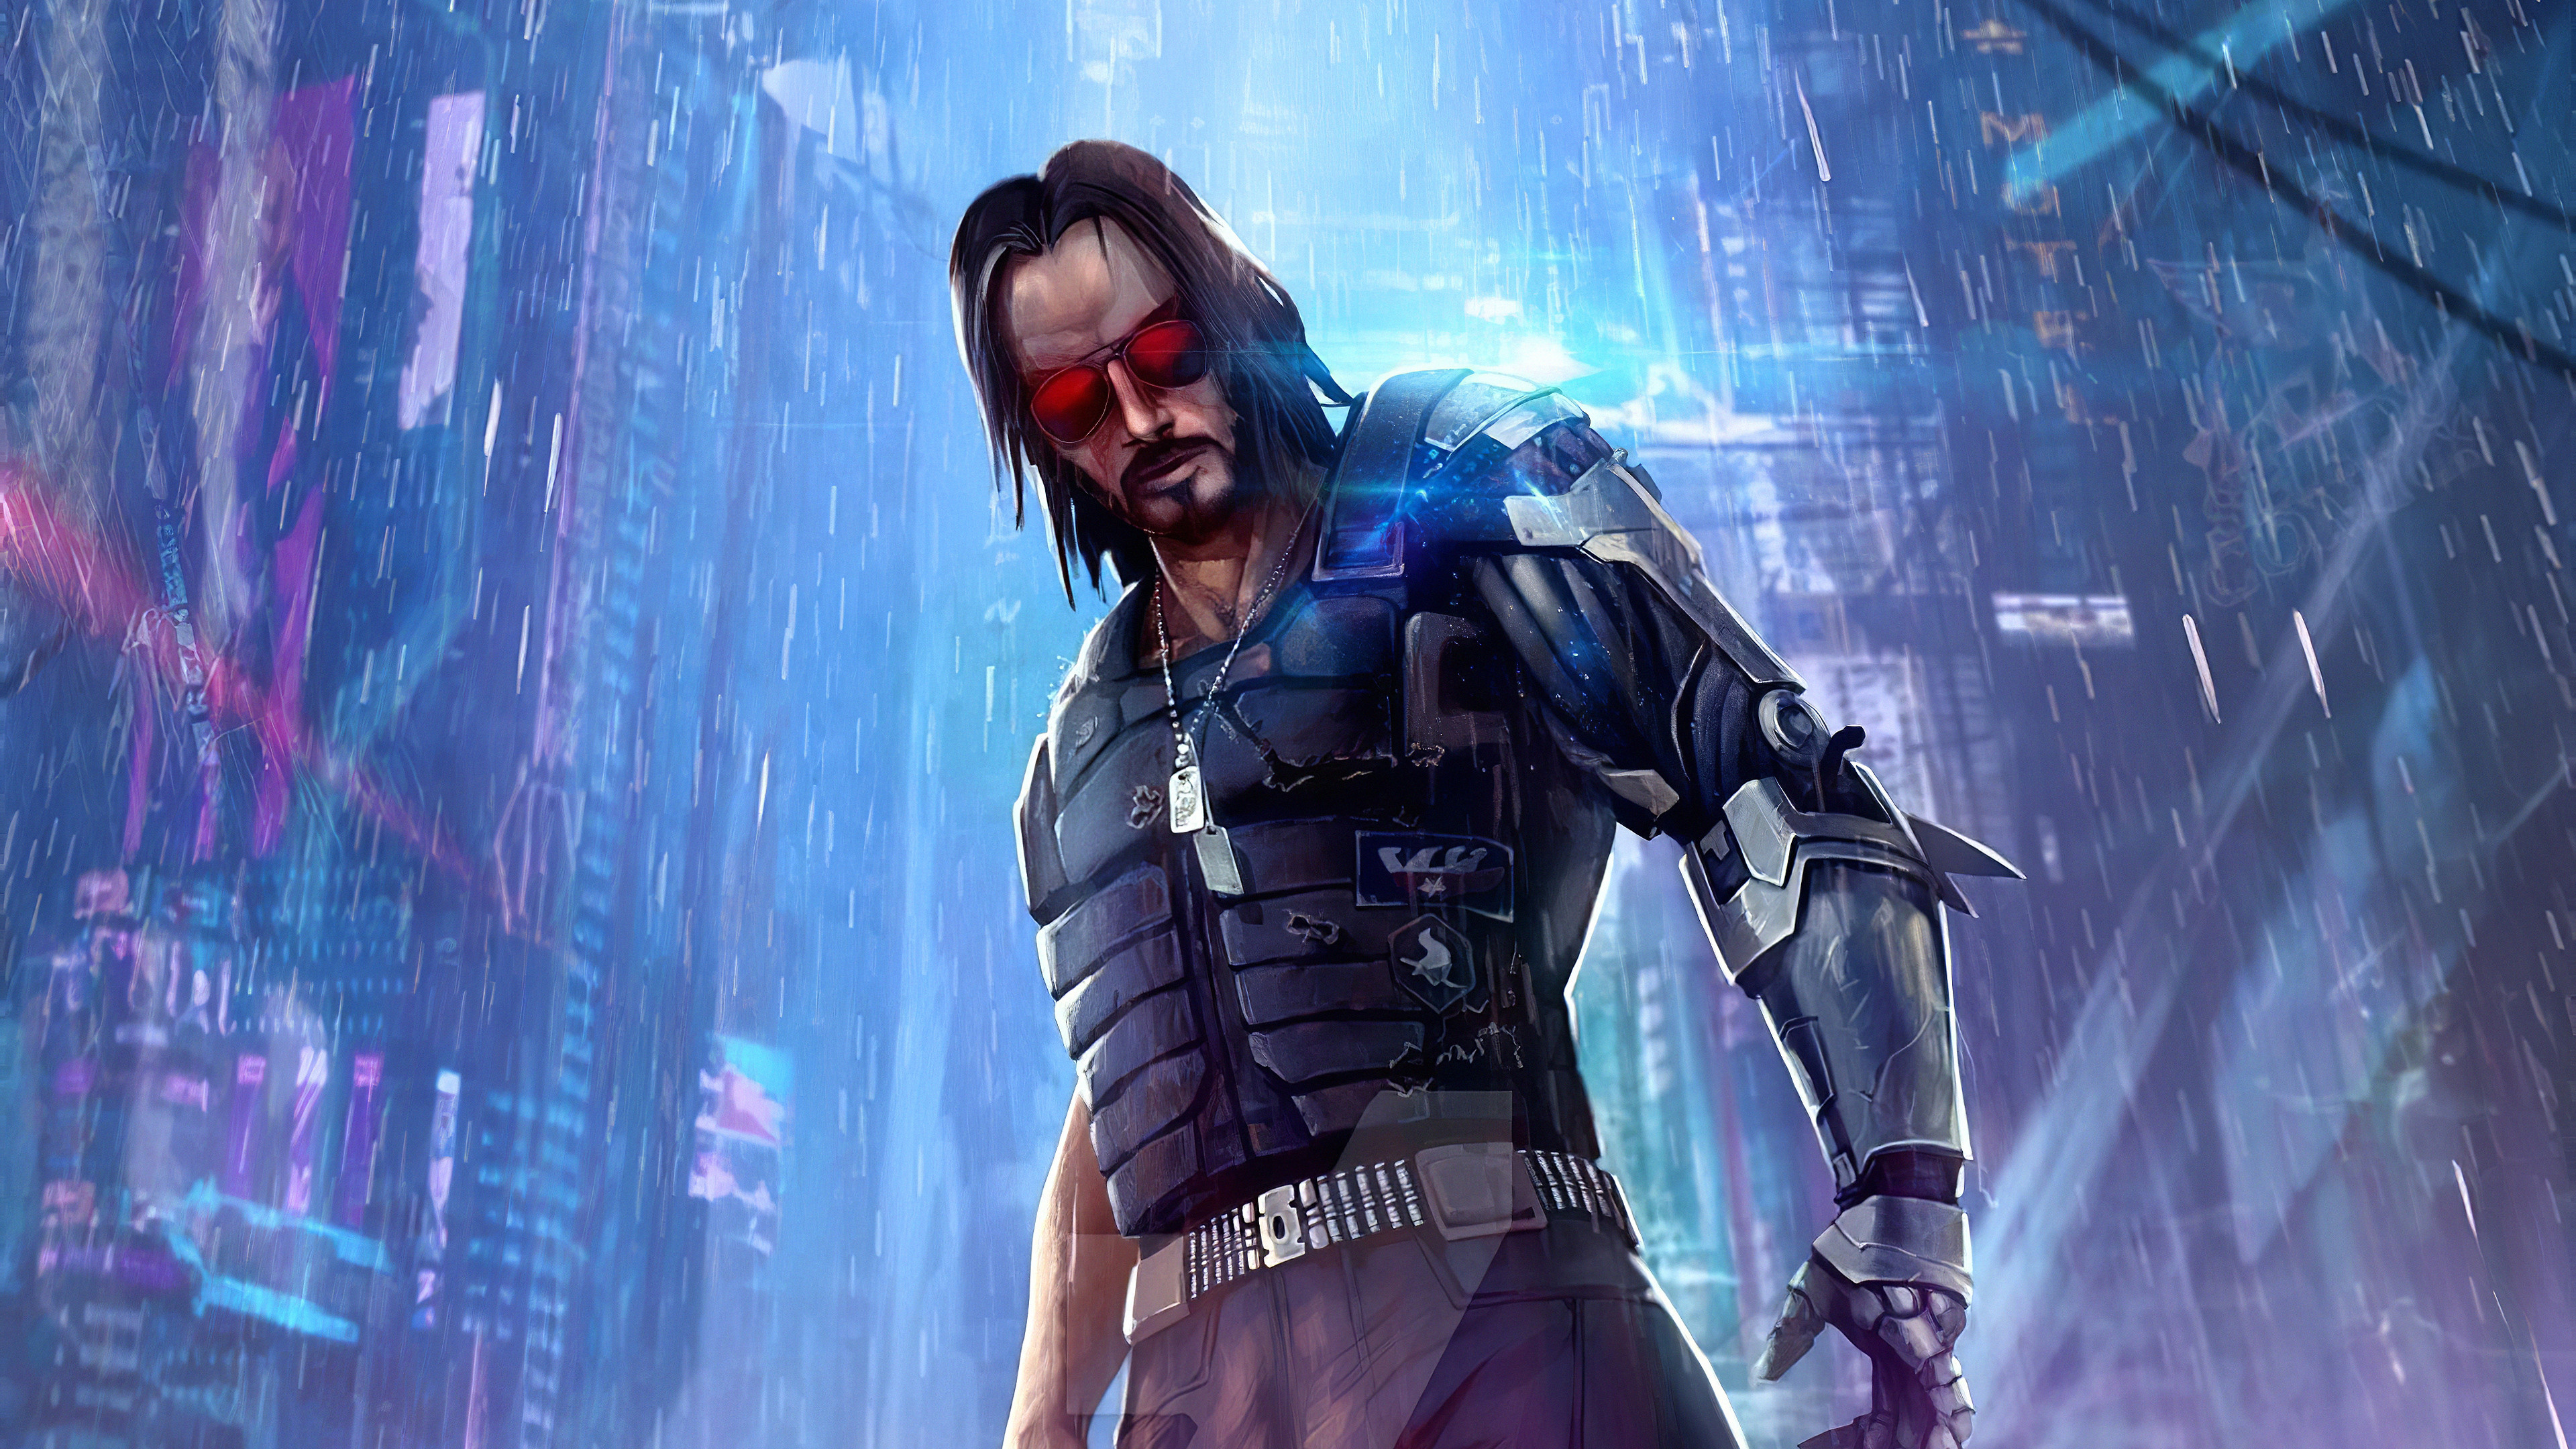 cyberpunk 2077 keanu js 3840x2160 1 - Cyberpunk 2077 Keanu Reeves Art - Cyberpunk 2077 Keanu Reeves wallpapers, Cyberpunk 2077 Keanu Reeves Art 4k wallpaper